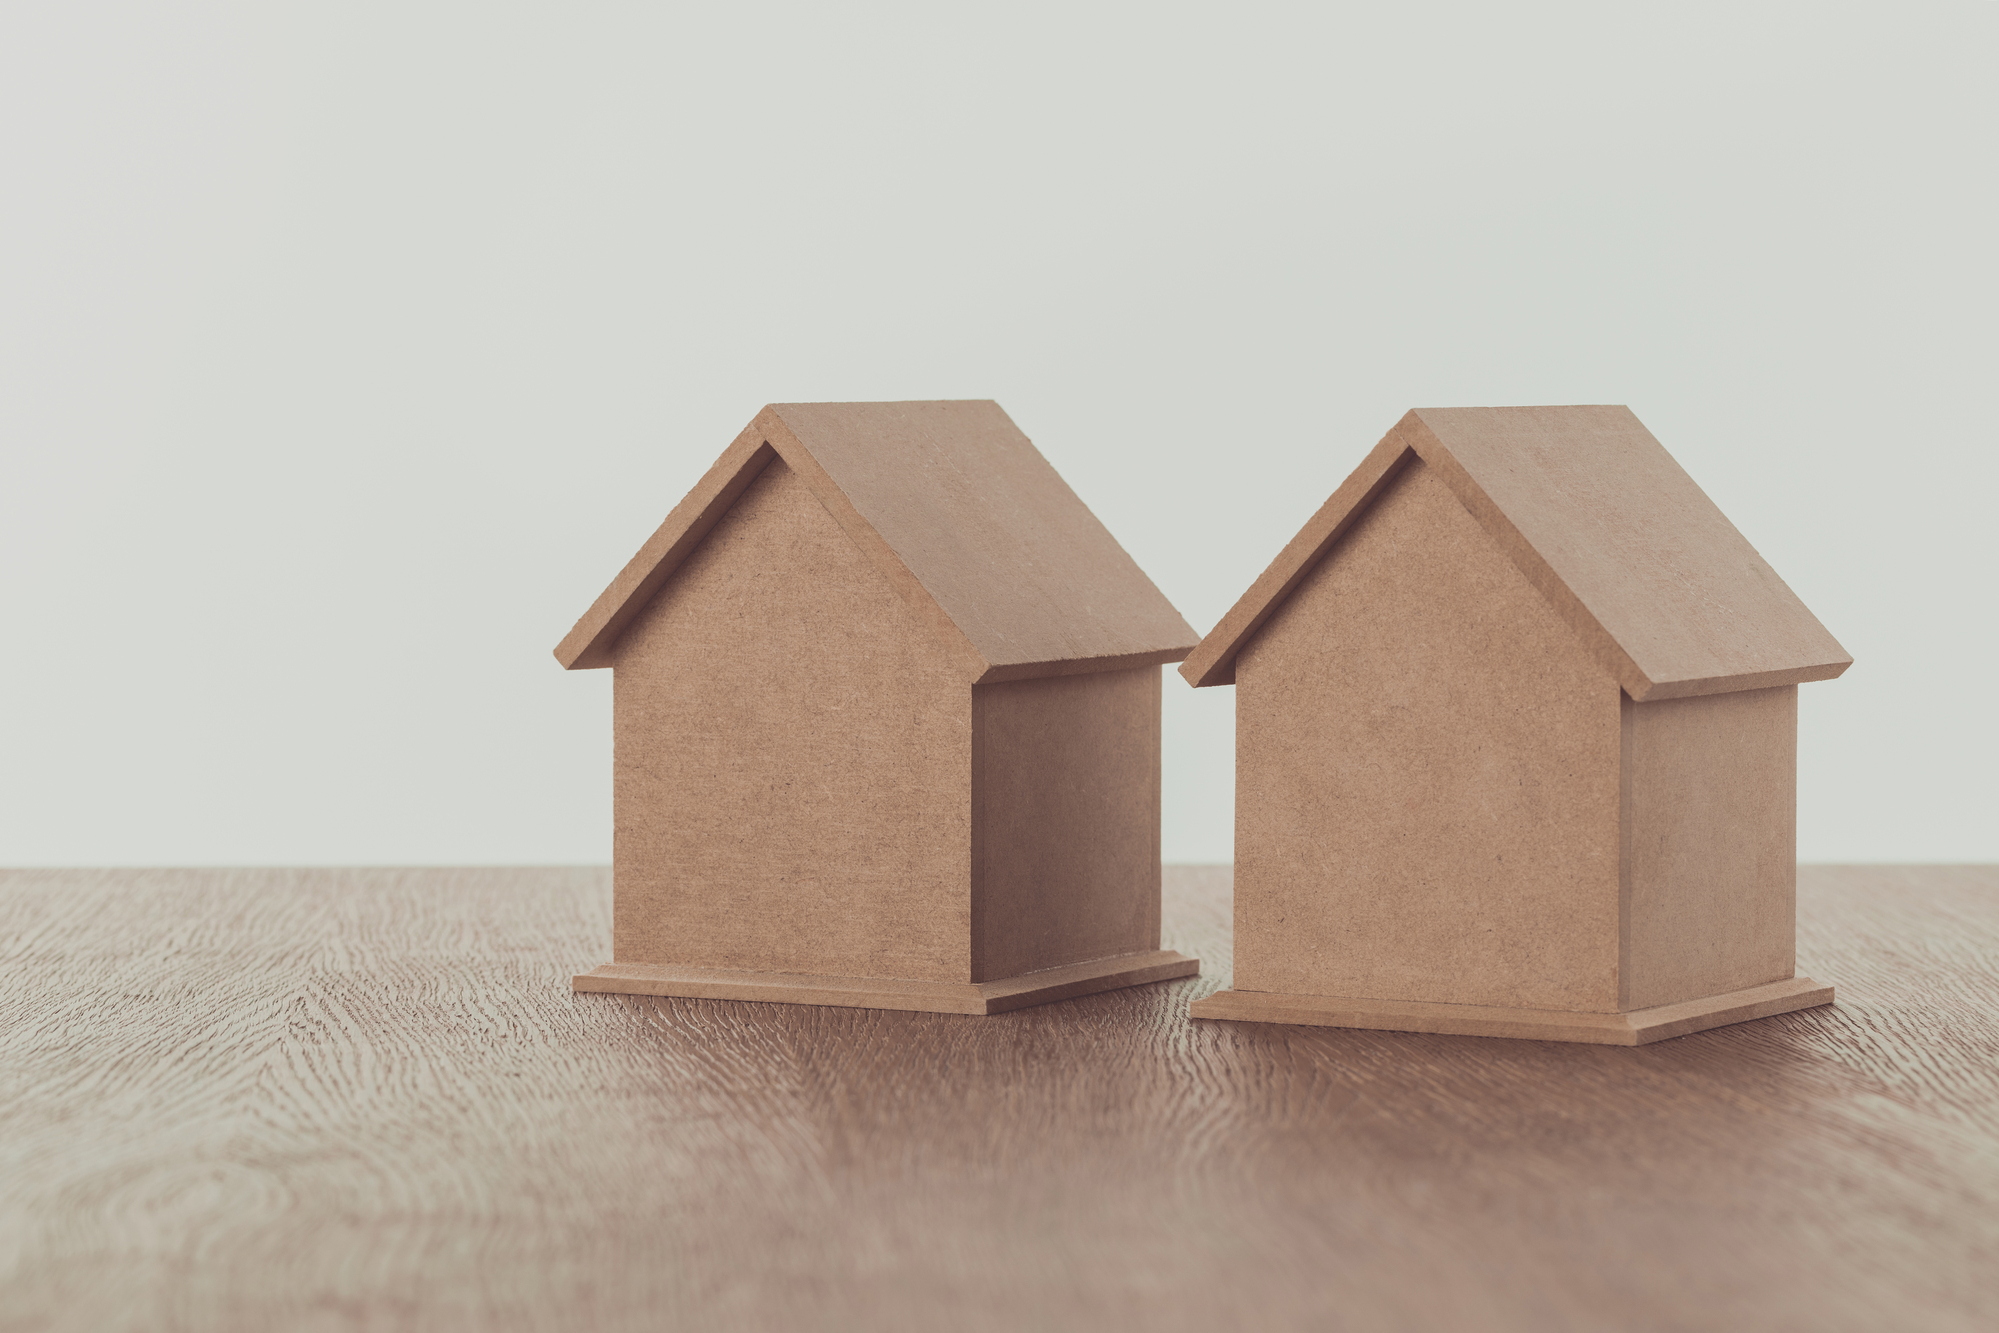 Two small wooden houses on wooden tabletop, saving concept